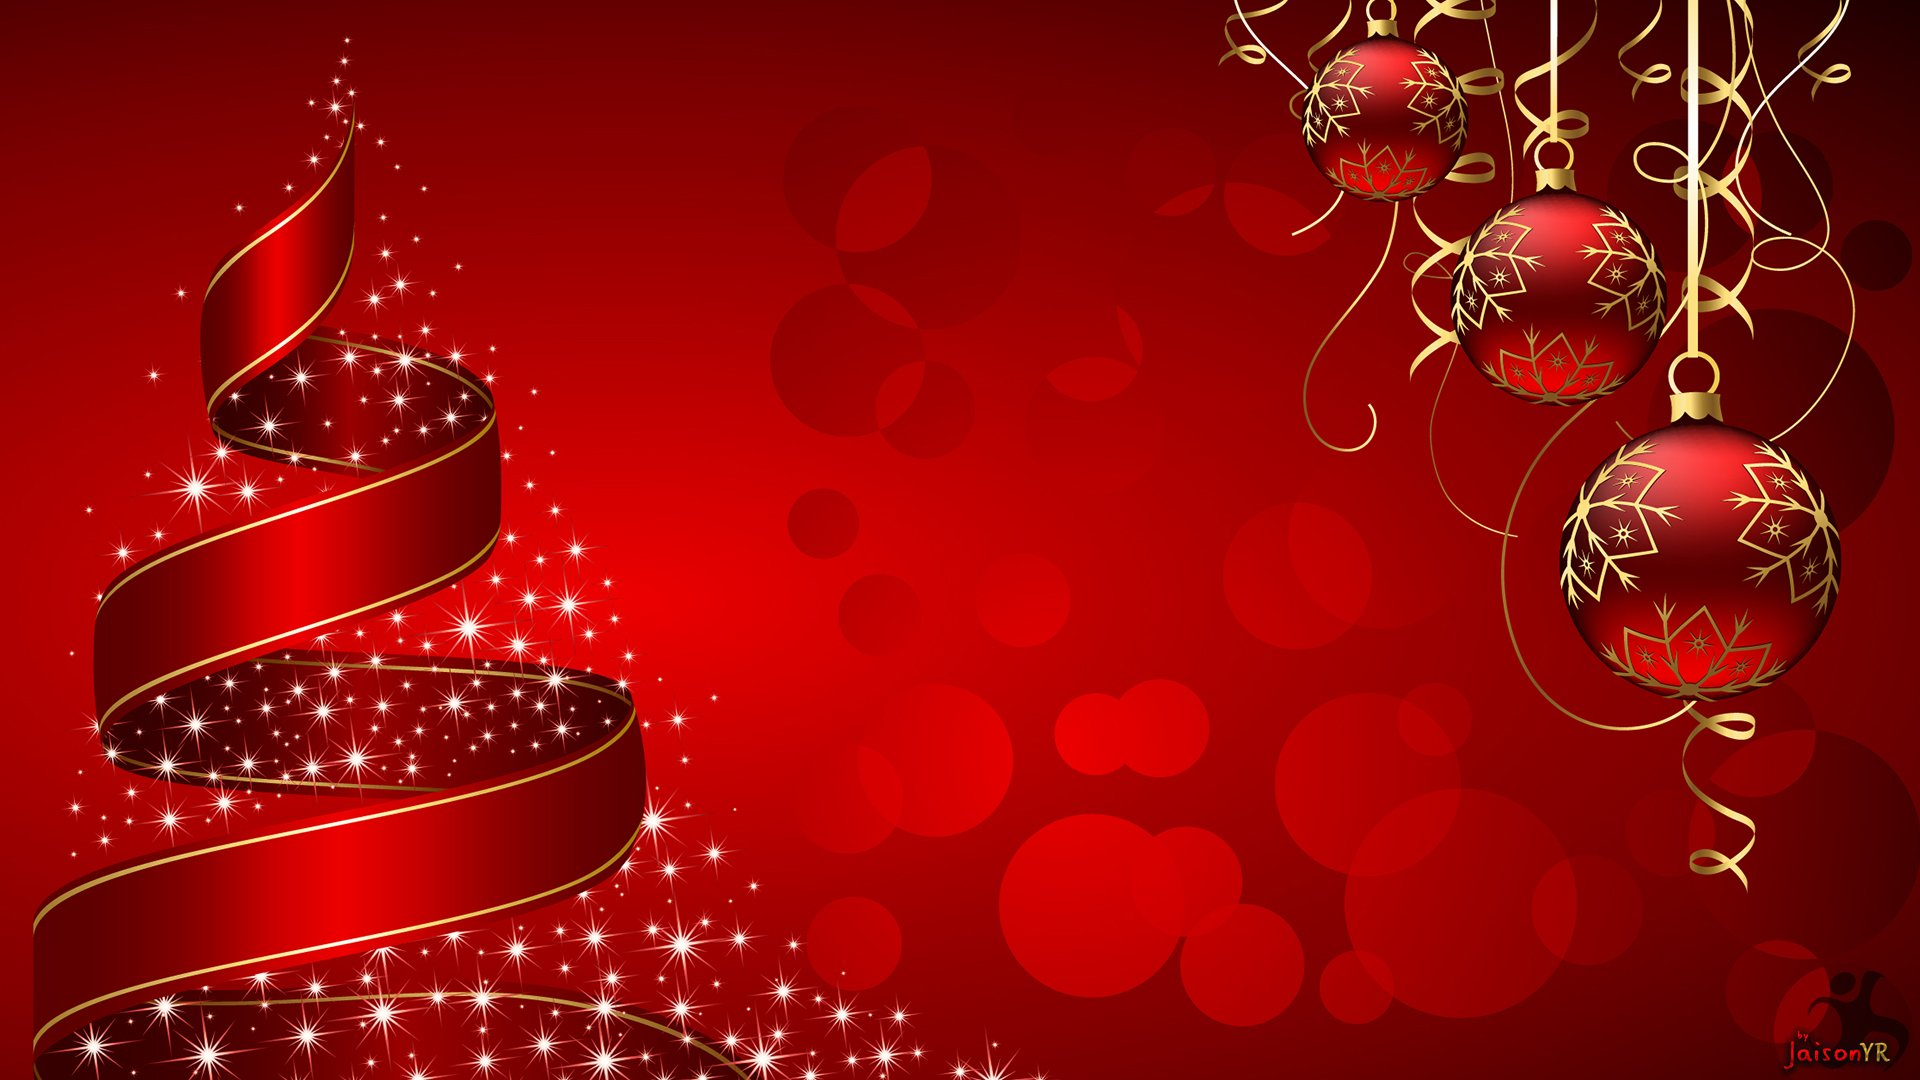 christmas tree wallpaper by jaisonyr customization wallpaper vector 1920x1080